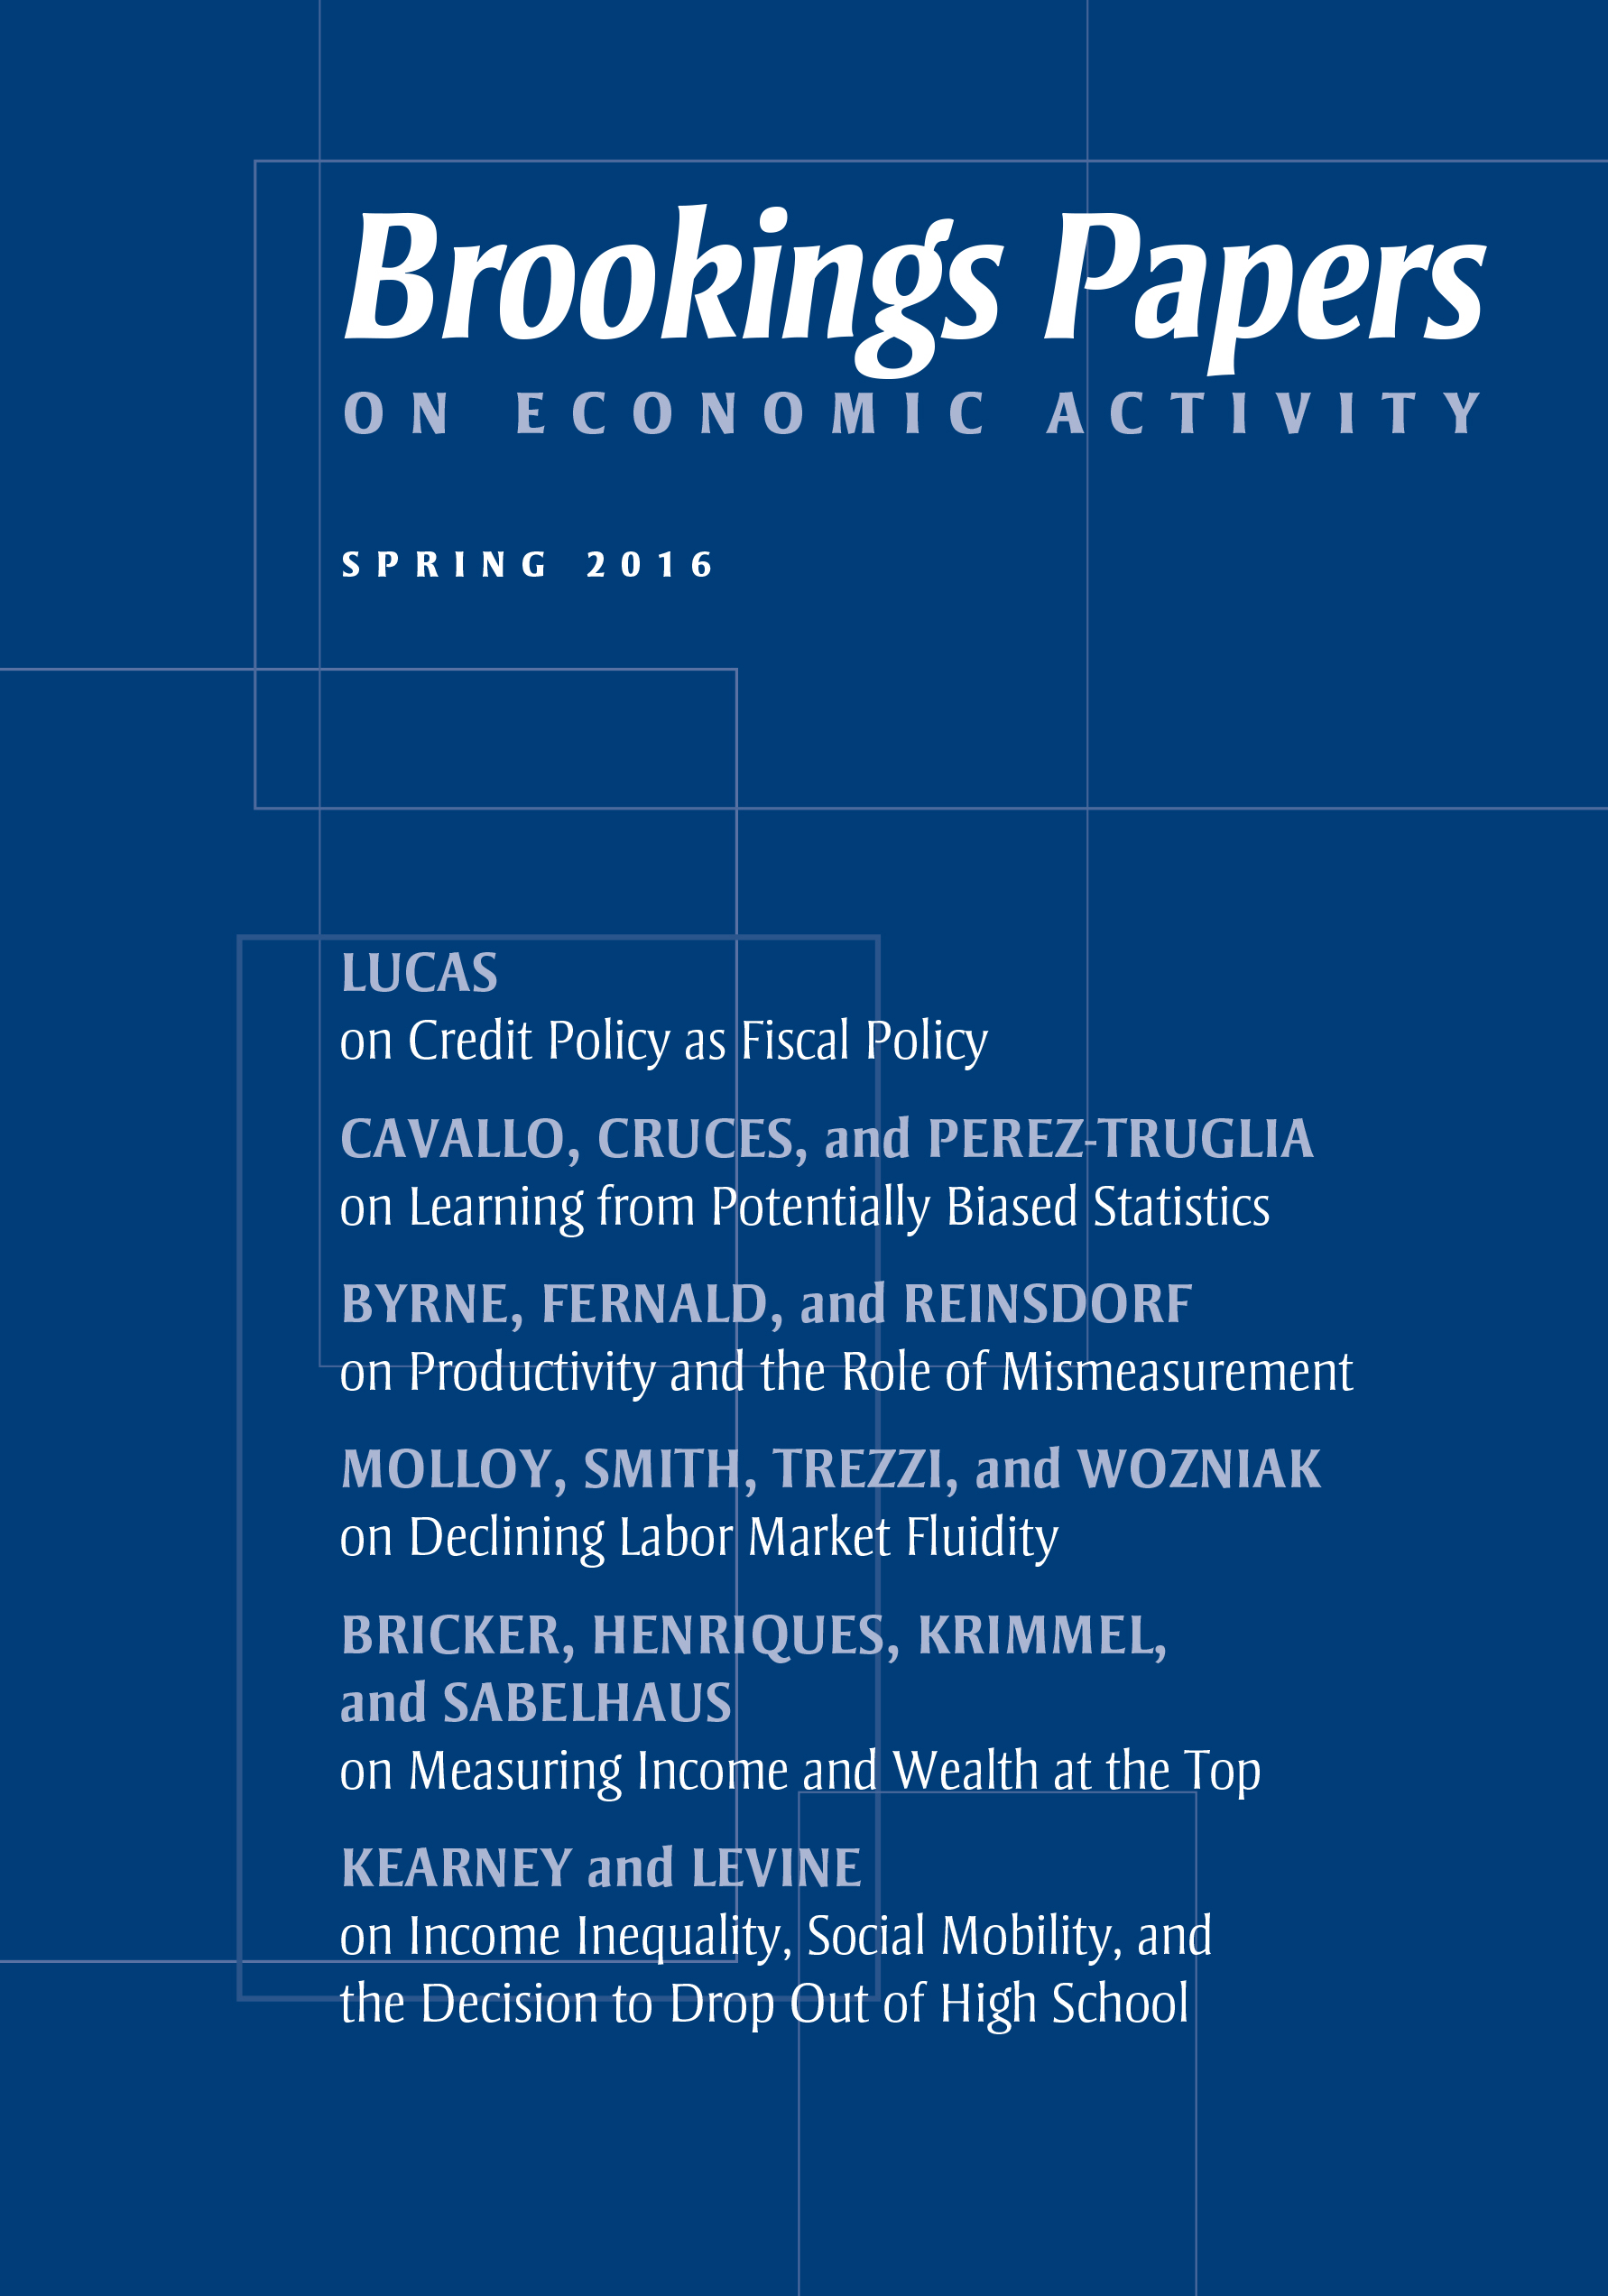 Brookings Papers On Economic Activity Spring